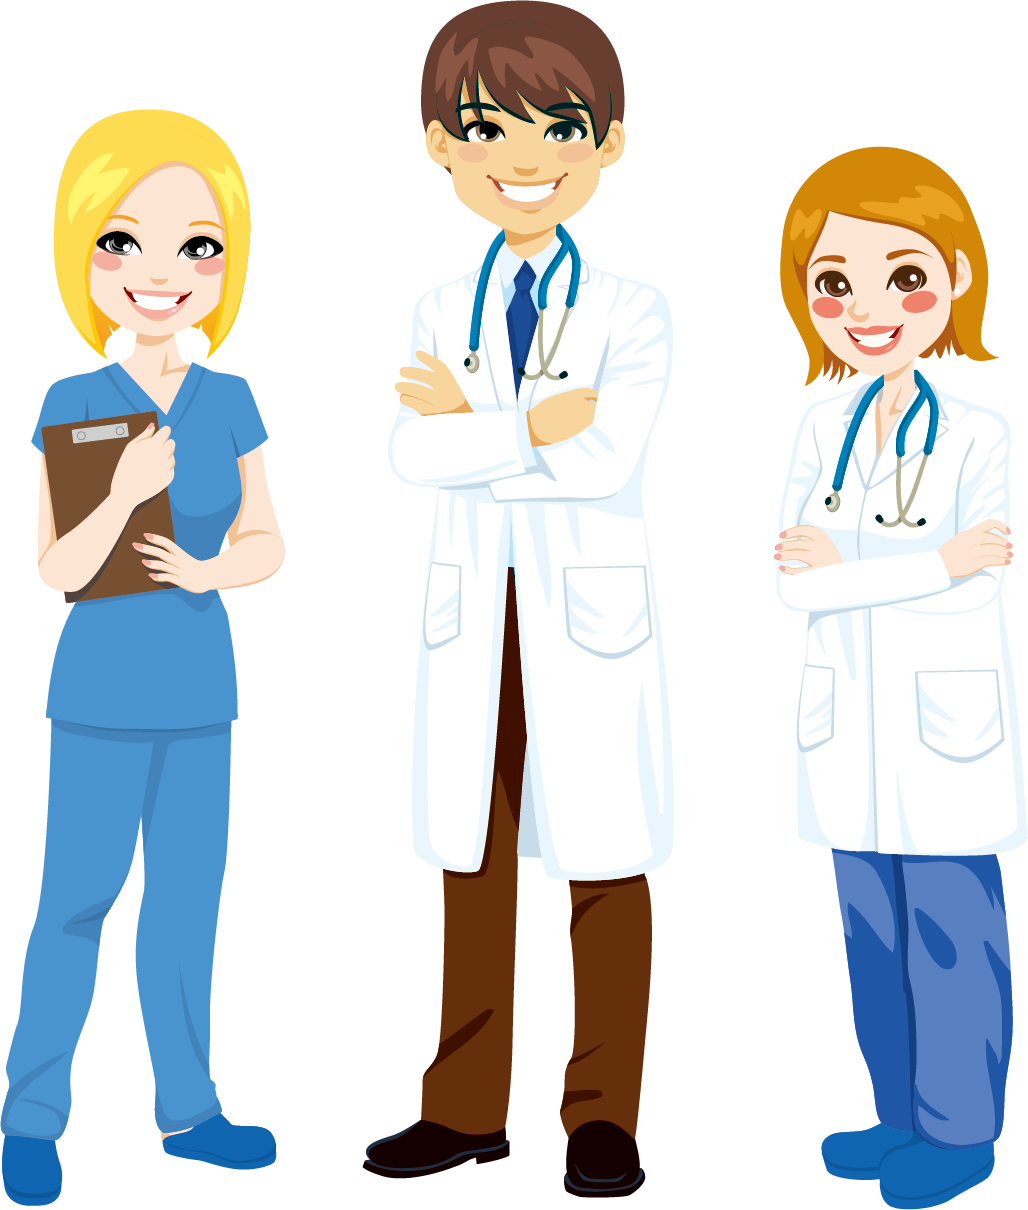 image free stock Male nurse clipart at. Vector doctor health worker